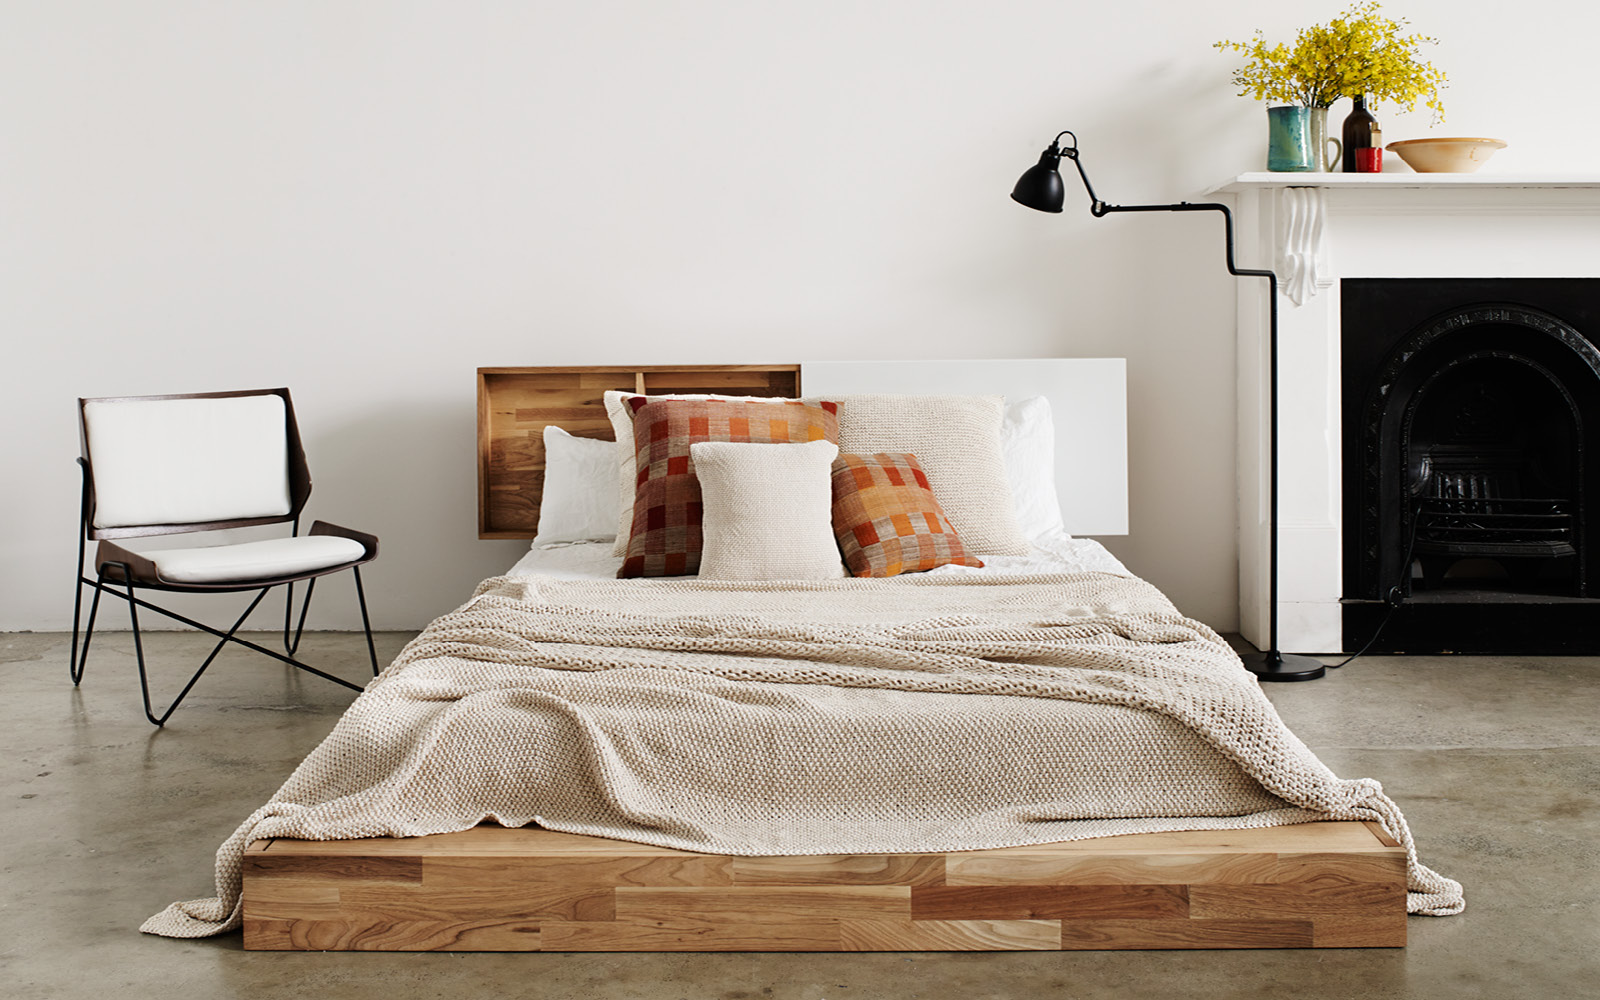 platform bed with storage laxseries storage headboard and platform. laxseries_platform bed_storage  headboard_05. laxseries platform bed xkescqu